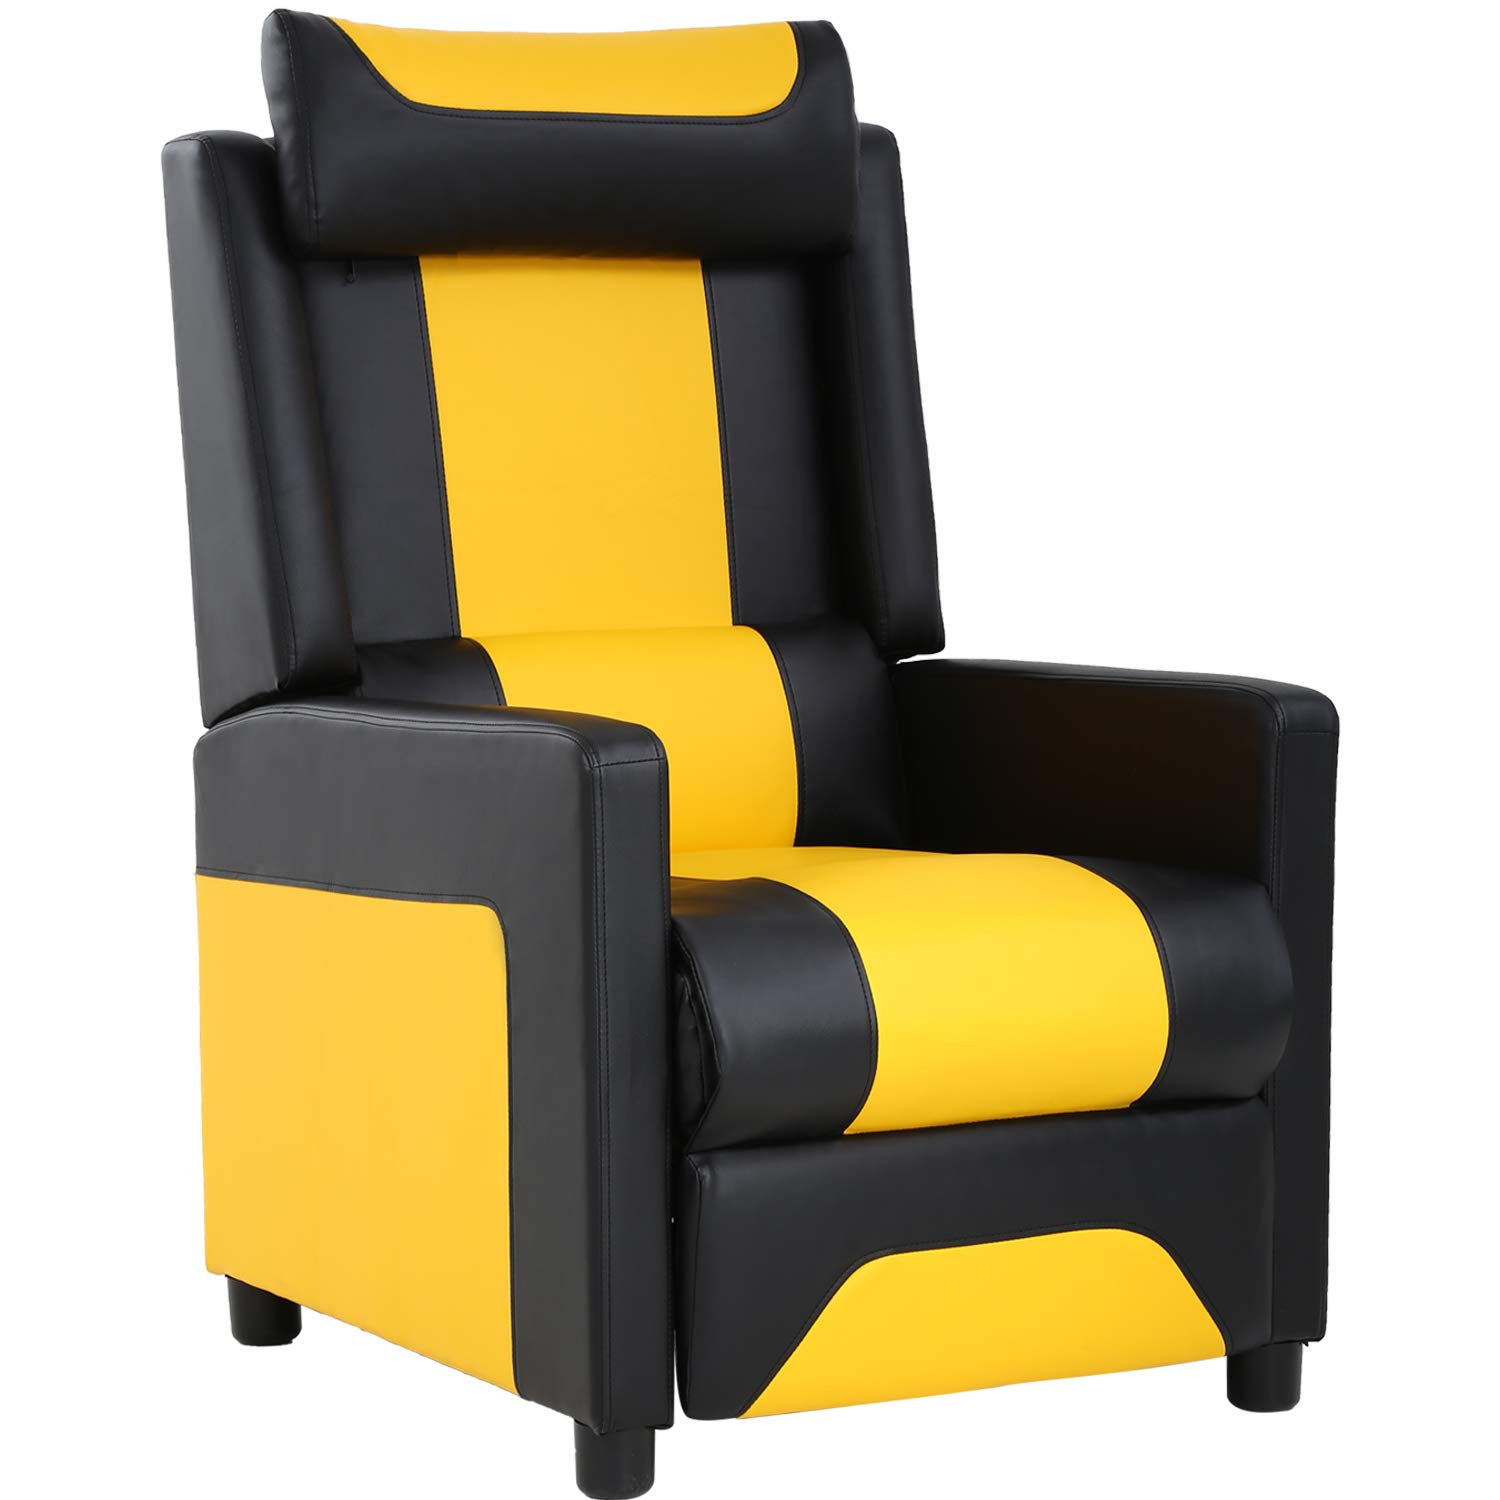 Gaming Chair Recliner Chair Reclining Sofa Single Home Theater Seating Gaming Sofa PU Leather for Living Room Furniture